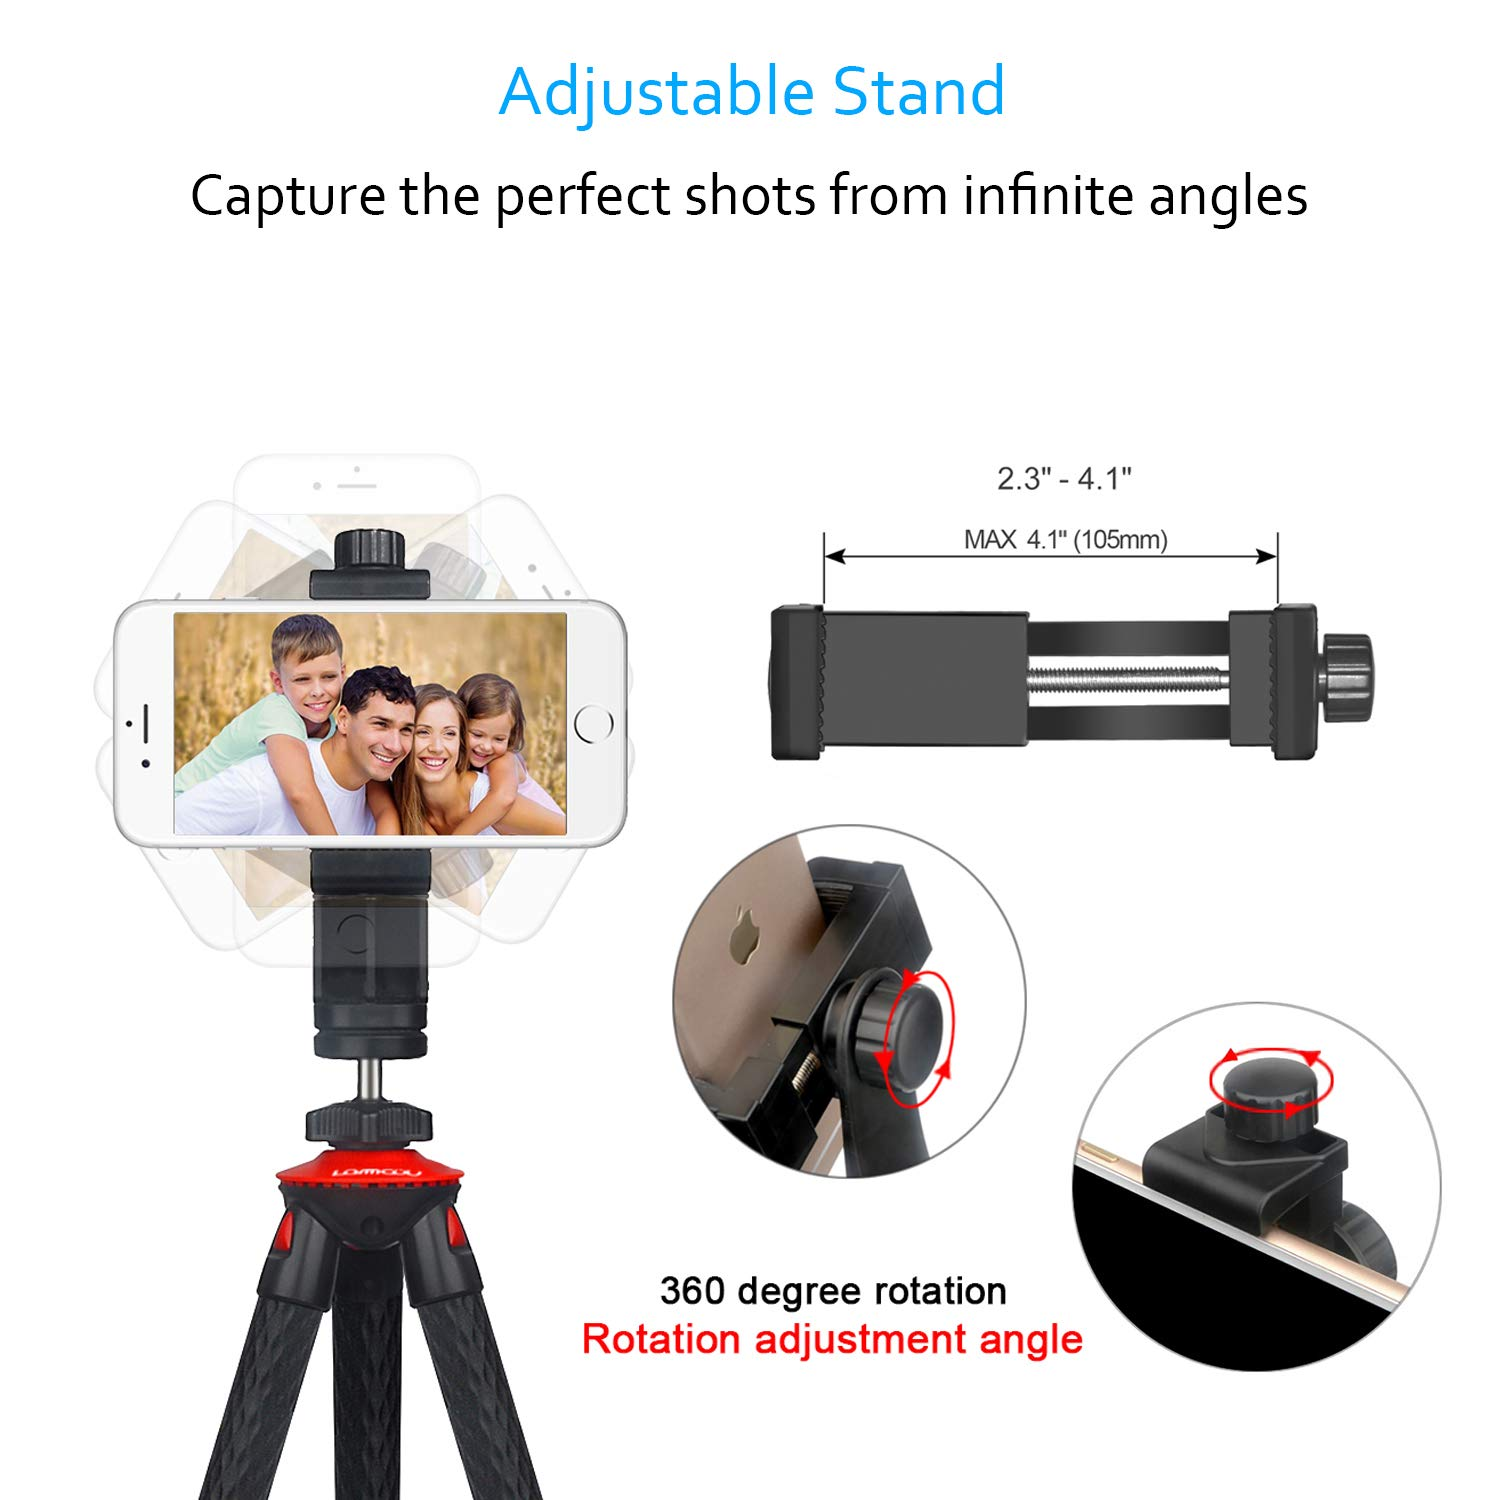 Flexible Camera Tripod Vlogging Bendable Travel Octopus Gorilla Portable Mini Tripods for DSLR Camera GoPro Smartphone Cell Phone Actioncam Webcam Camcorder Canon GX7 Nikon Sony Phone Xs Samsung Stand by Lammcou (Image #3)